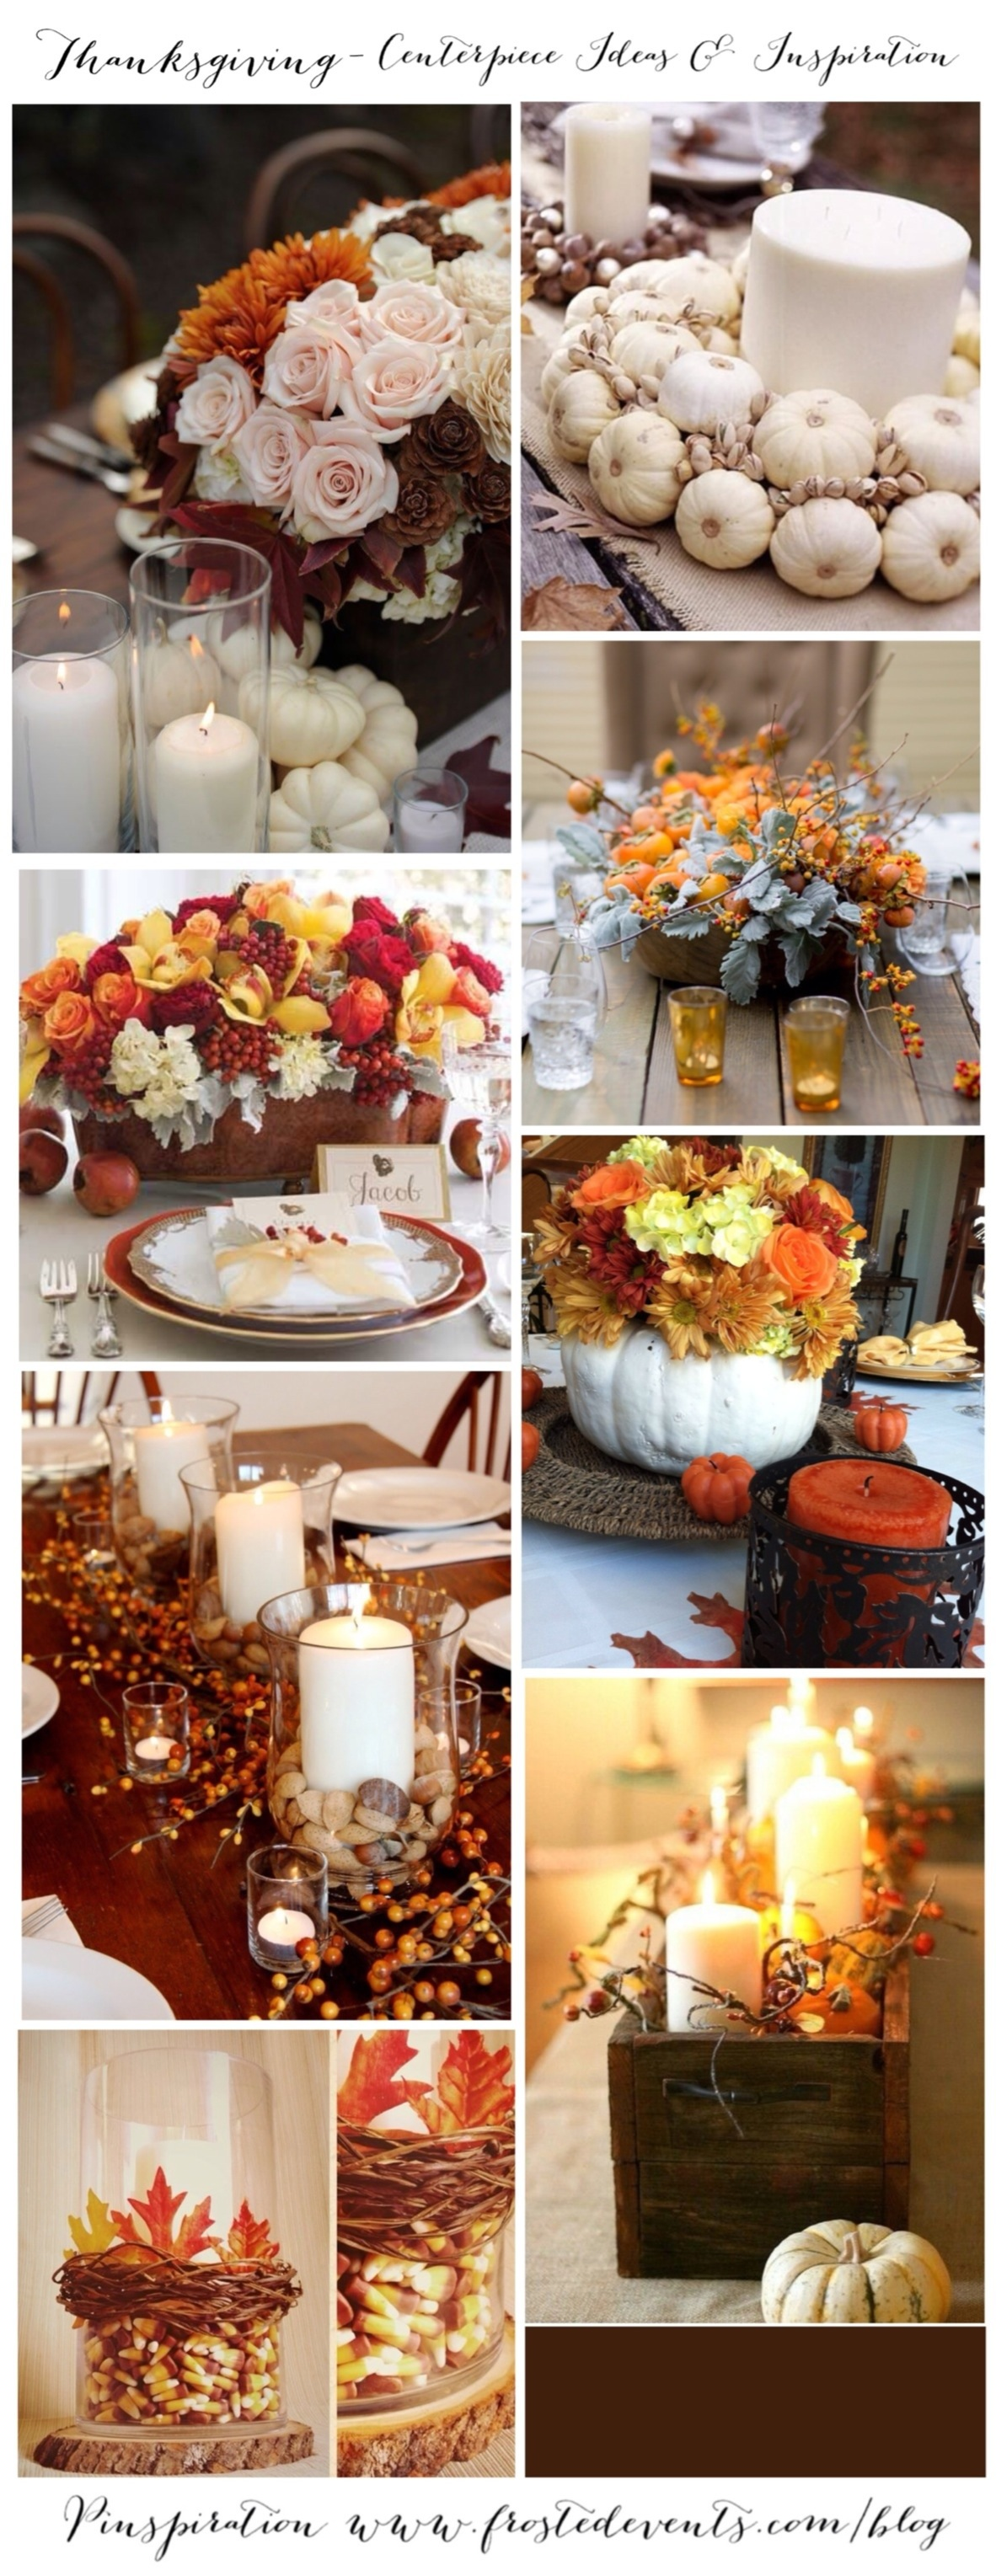 Thanksgiving- Centerpiece Ideas & Inspiration www.frostedevents.com Table Style